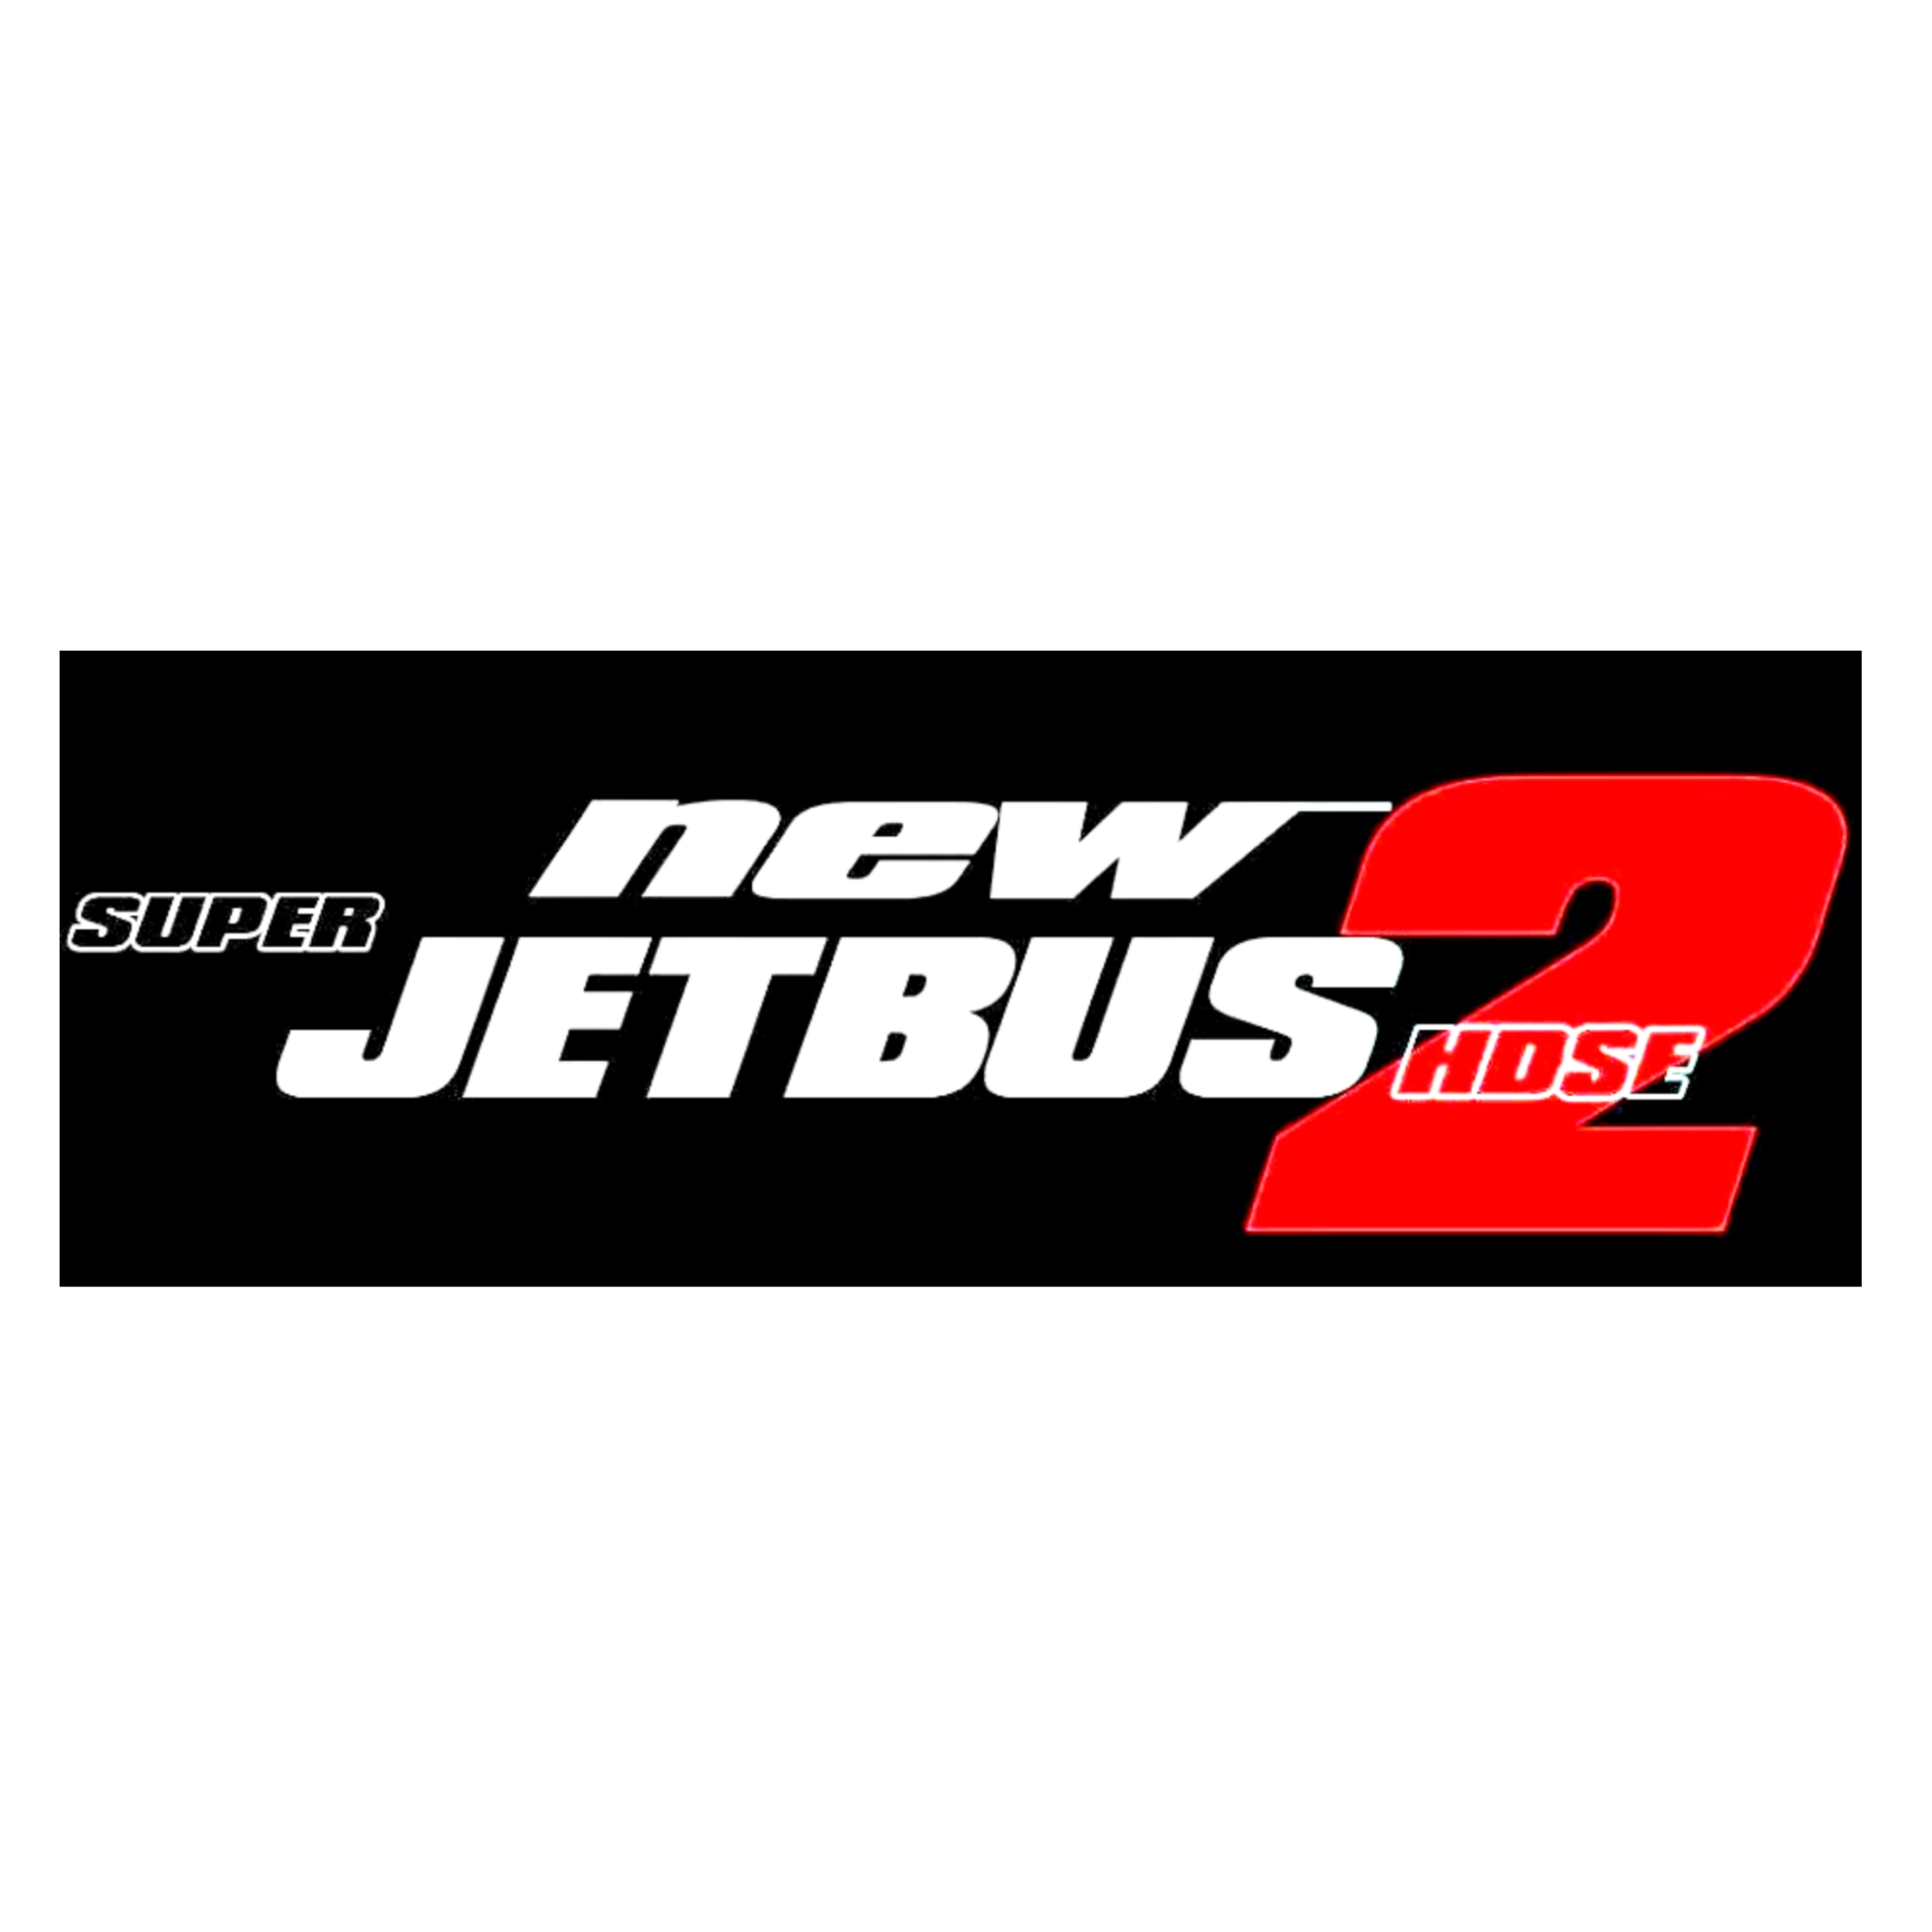 Jetbus Sticker By Mabiring74